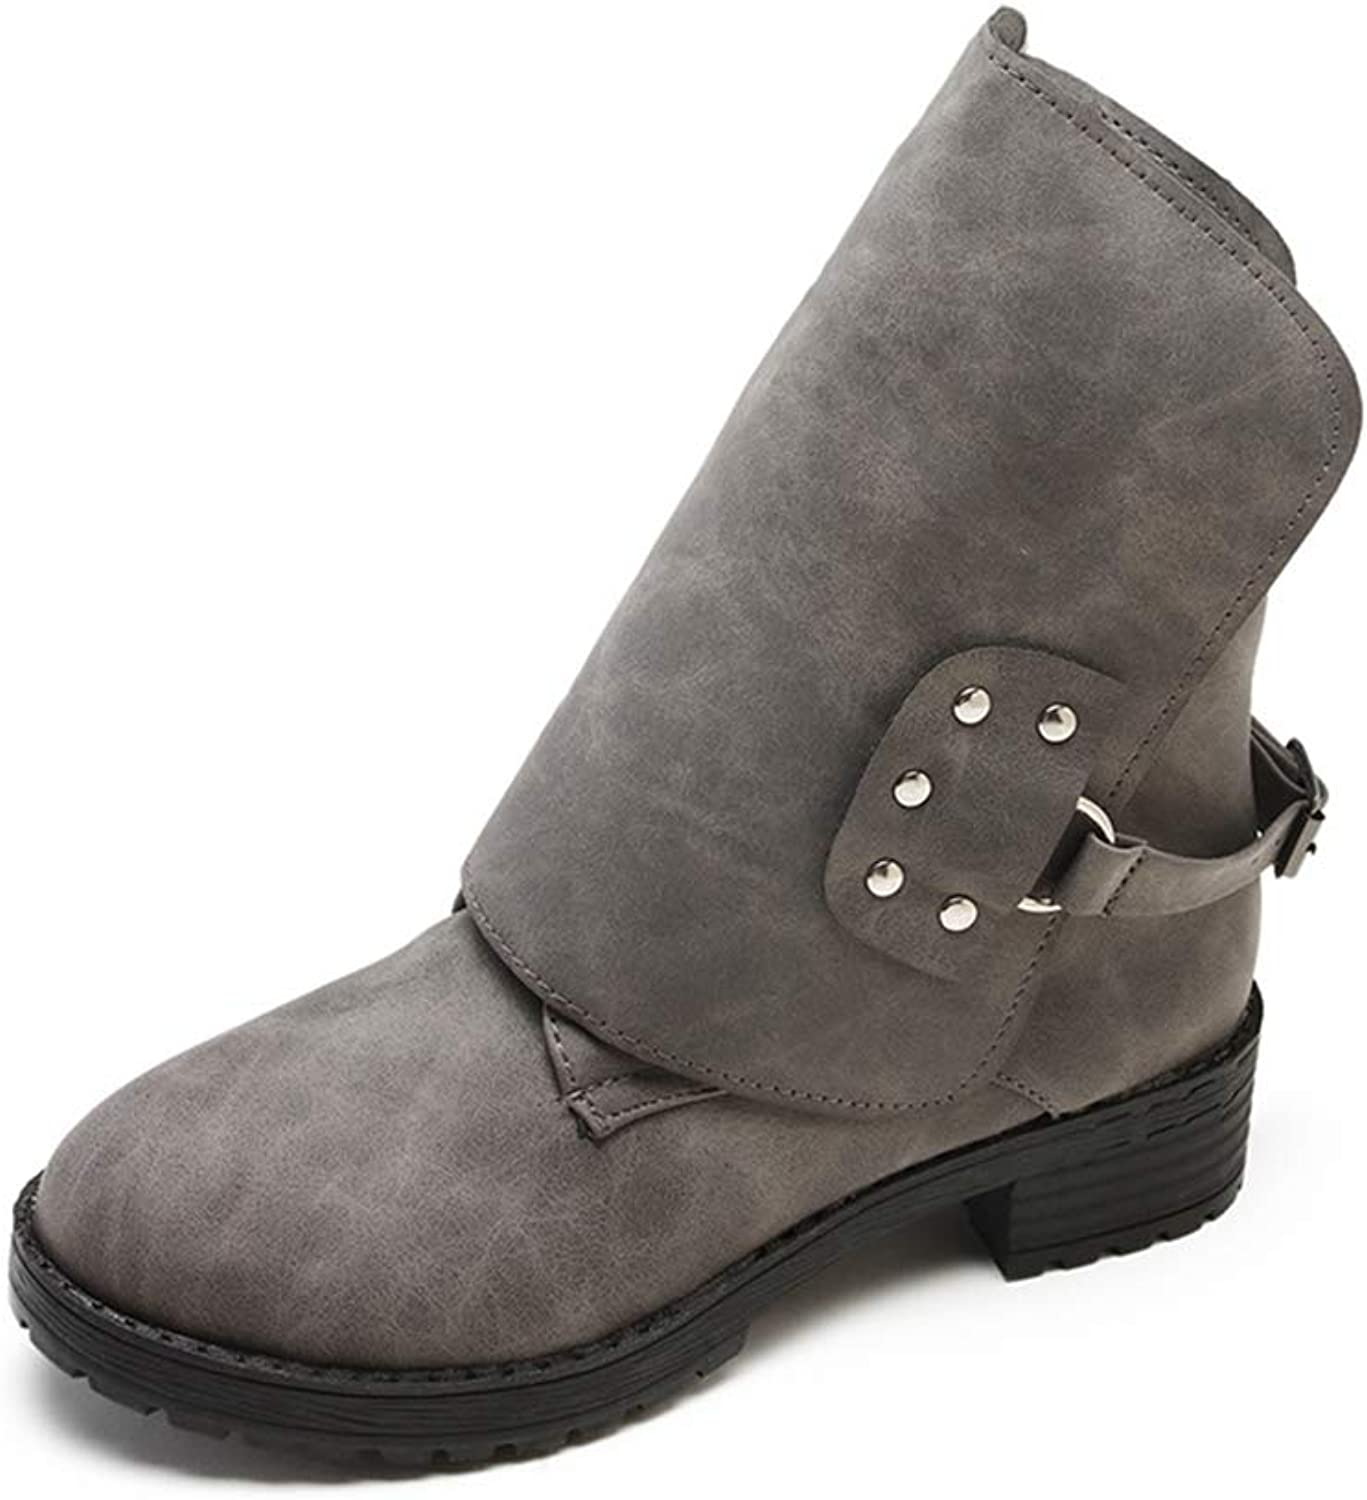 Women Wide Calf Ankle Boots Round Toe Flat Low Heels Soft PU Leather Short Booties, Wear-Resist Rubber Sole